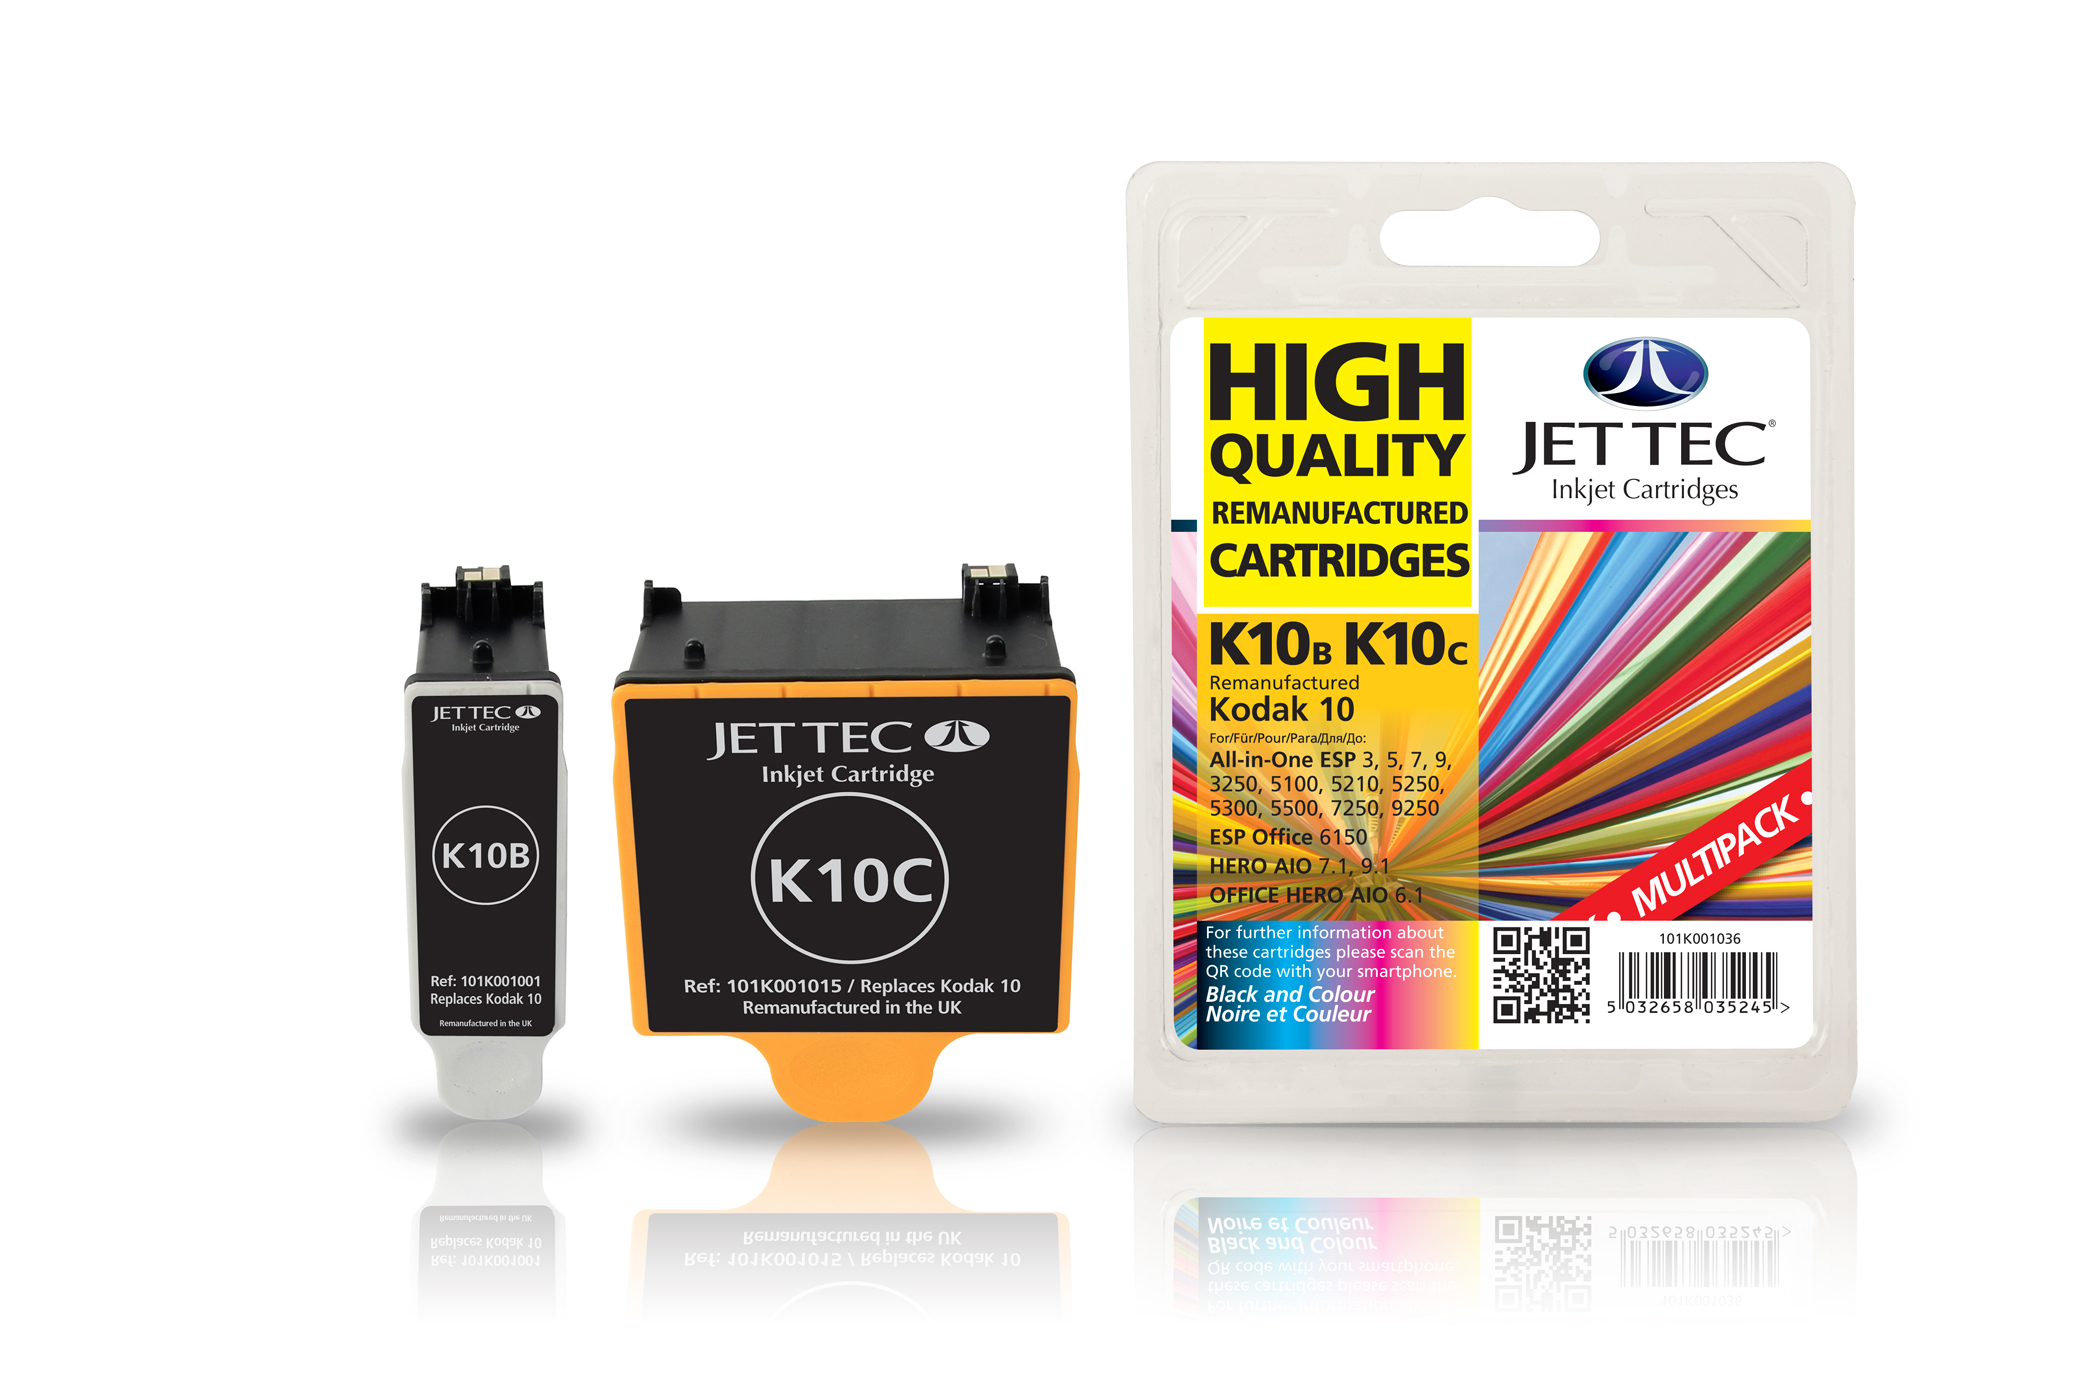 Jet Tec K10BC - Low cost Jet Tec Ink Cartridges for Kodak Printers